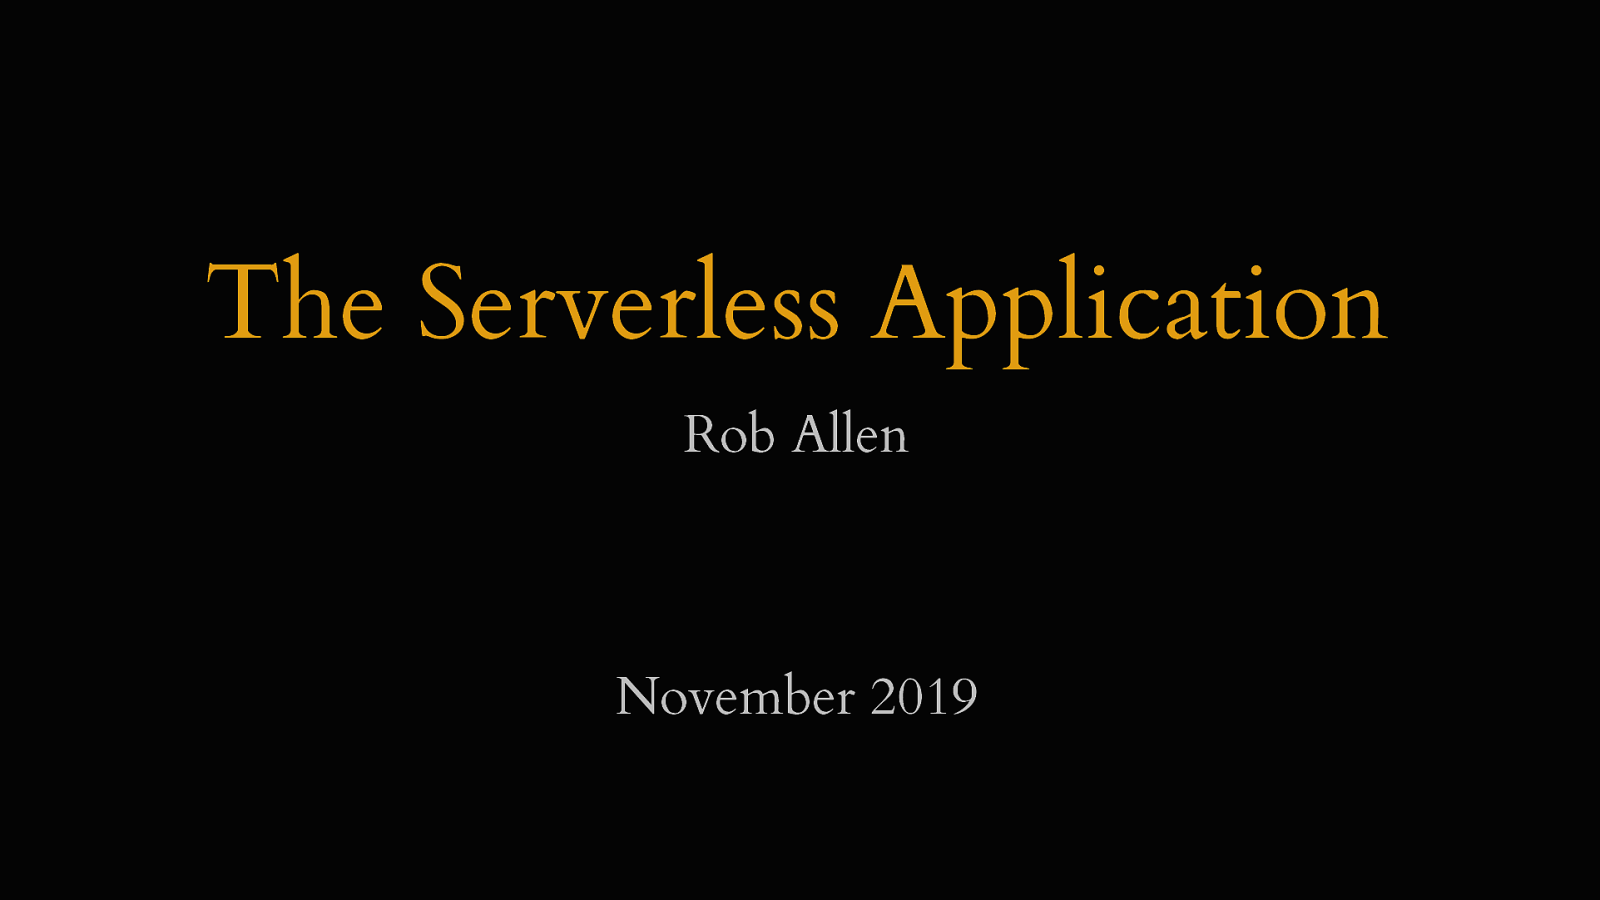 The Serverless Application